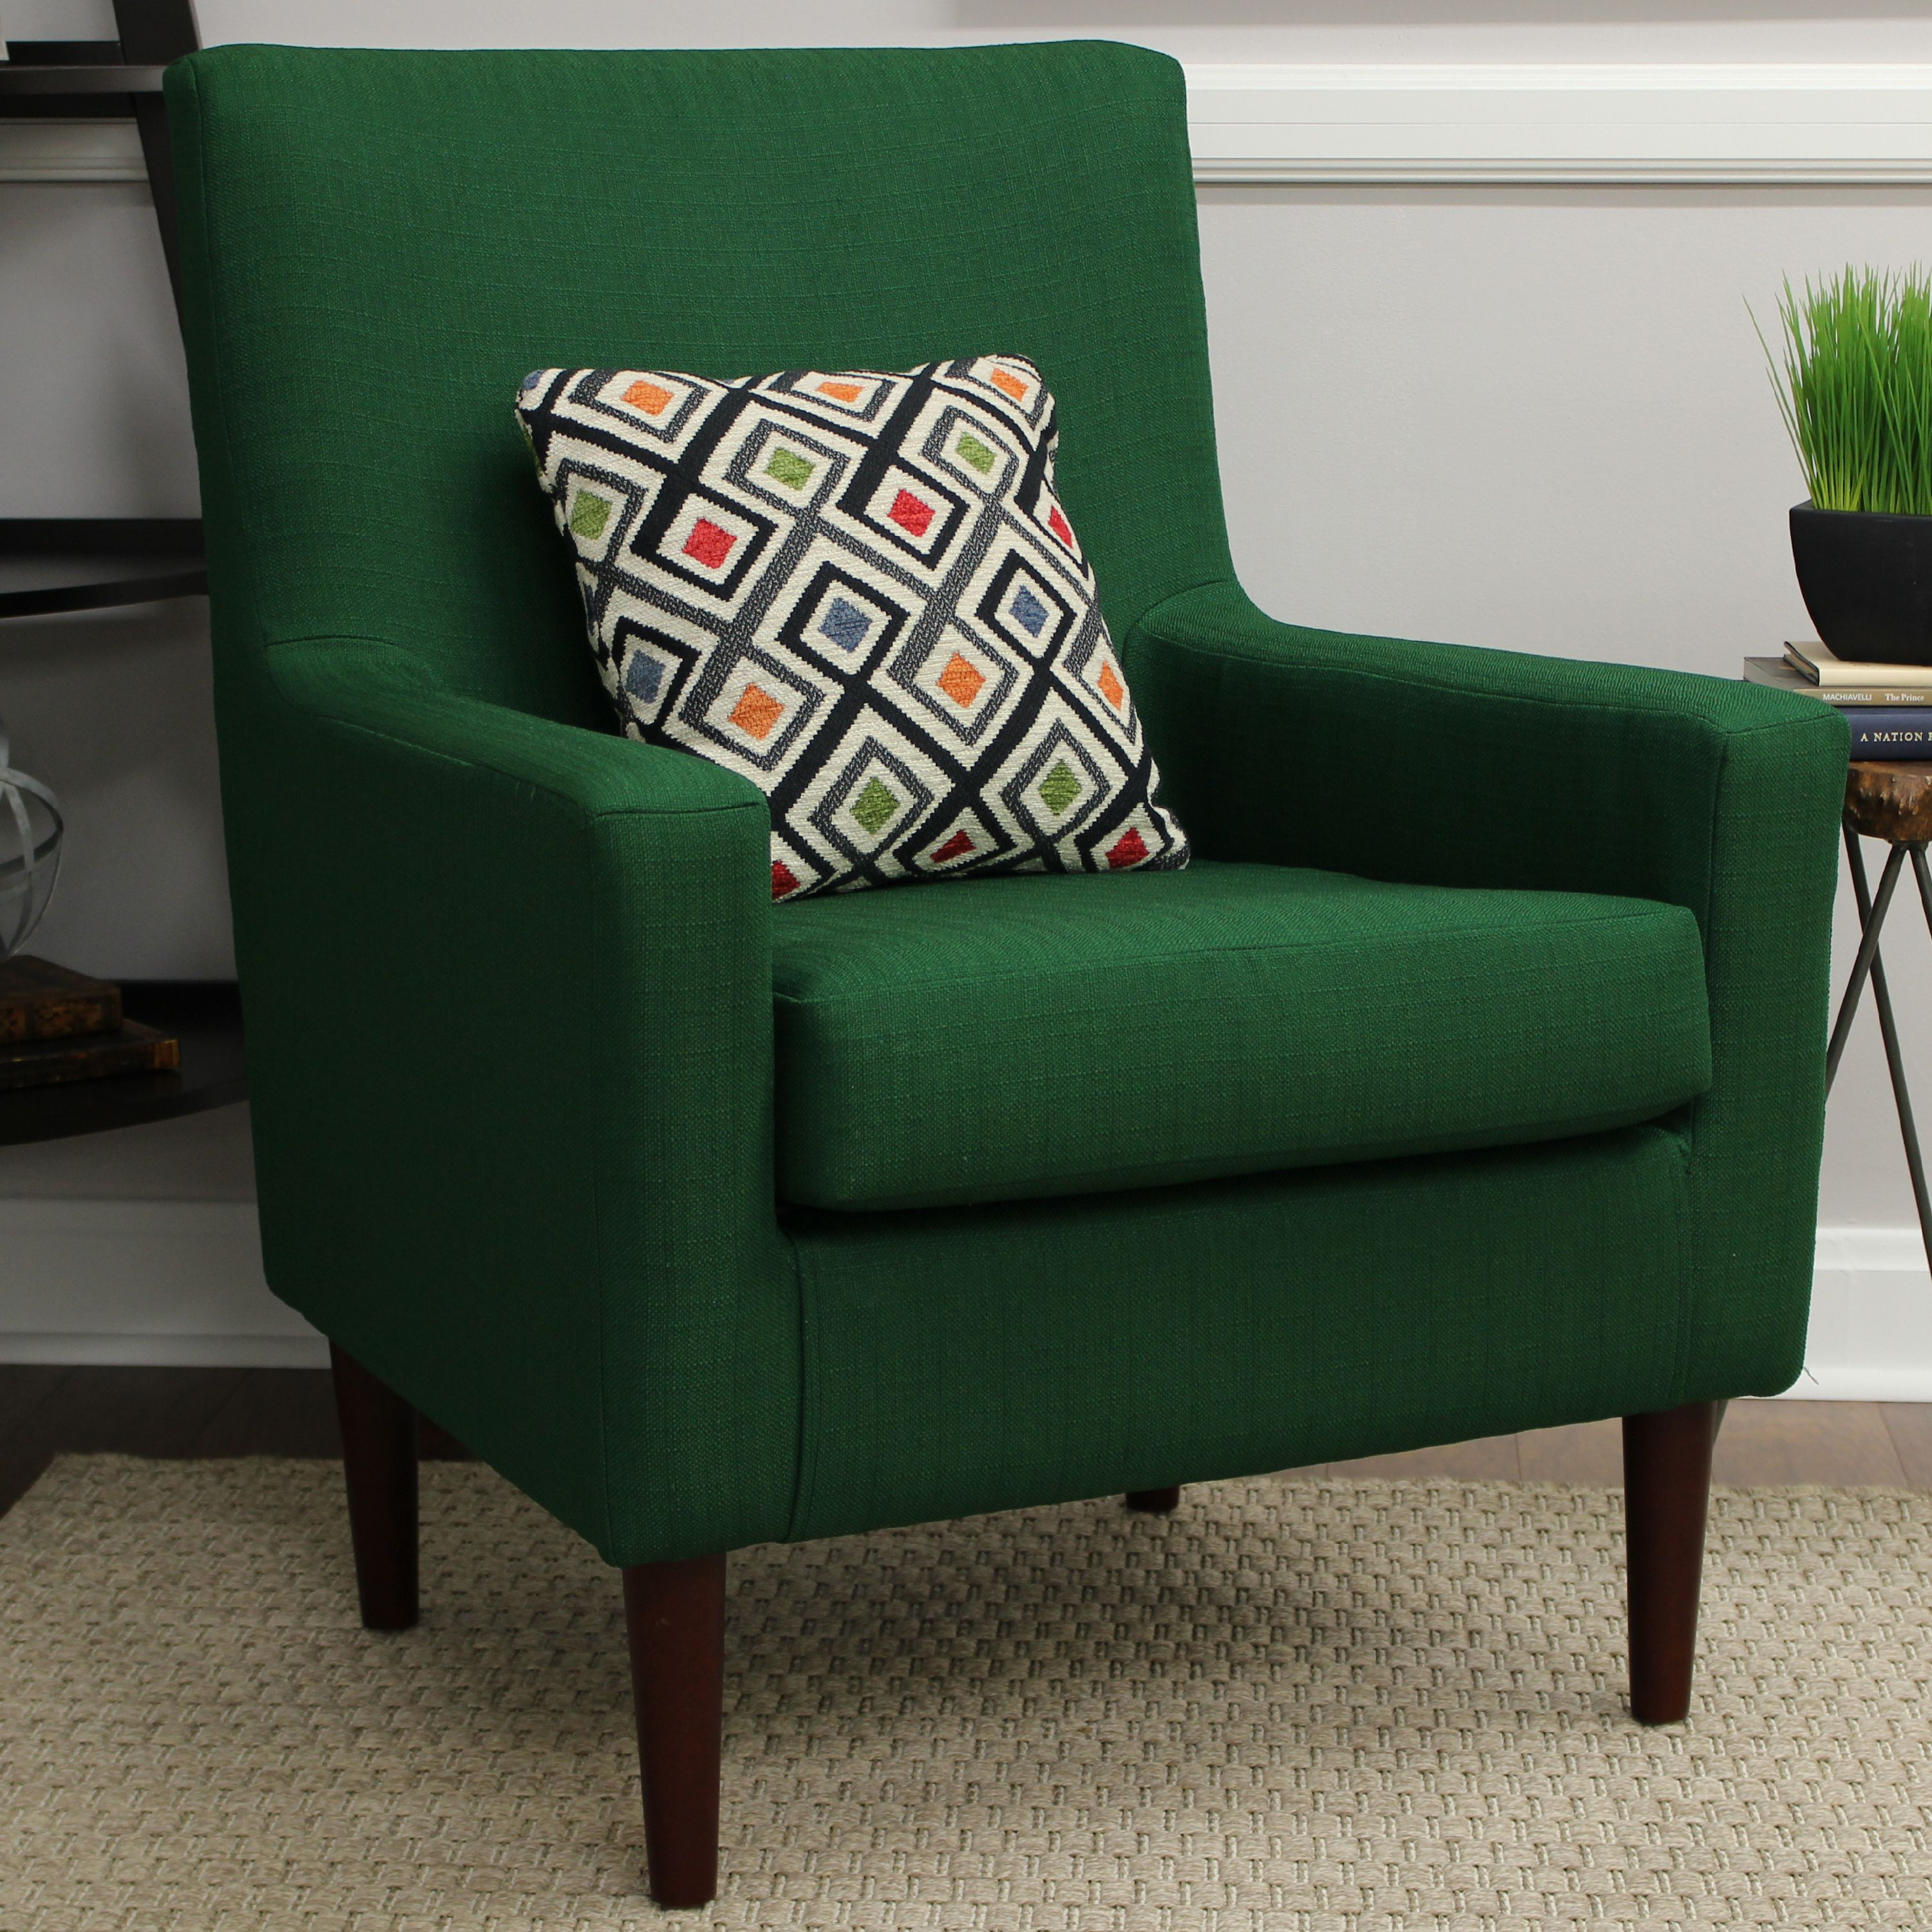 Emma Lounge Chair Emerald Green by Overman